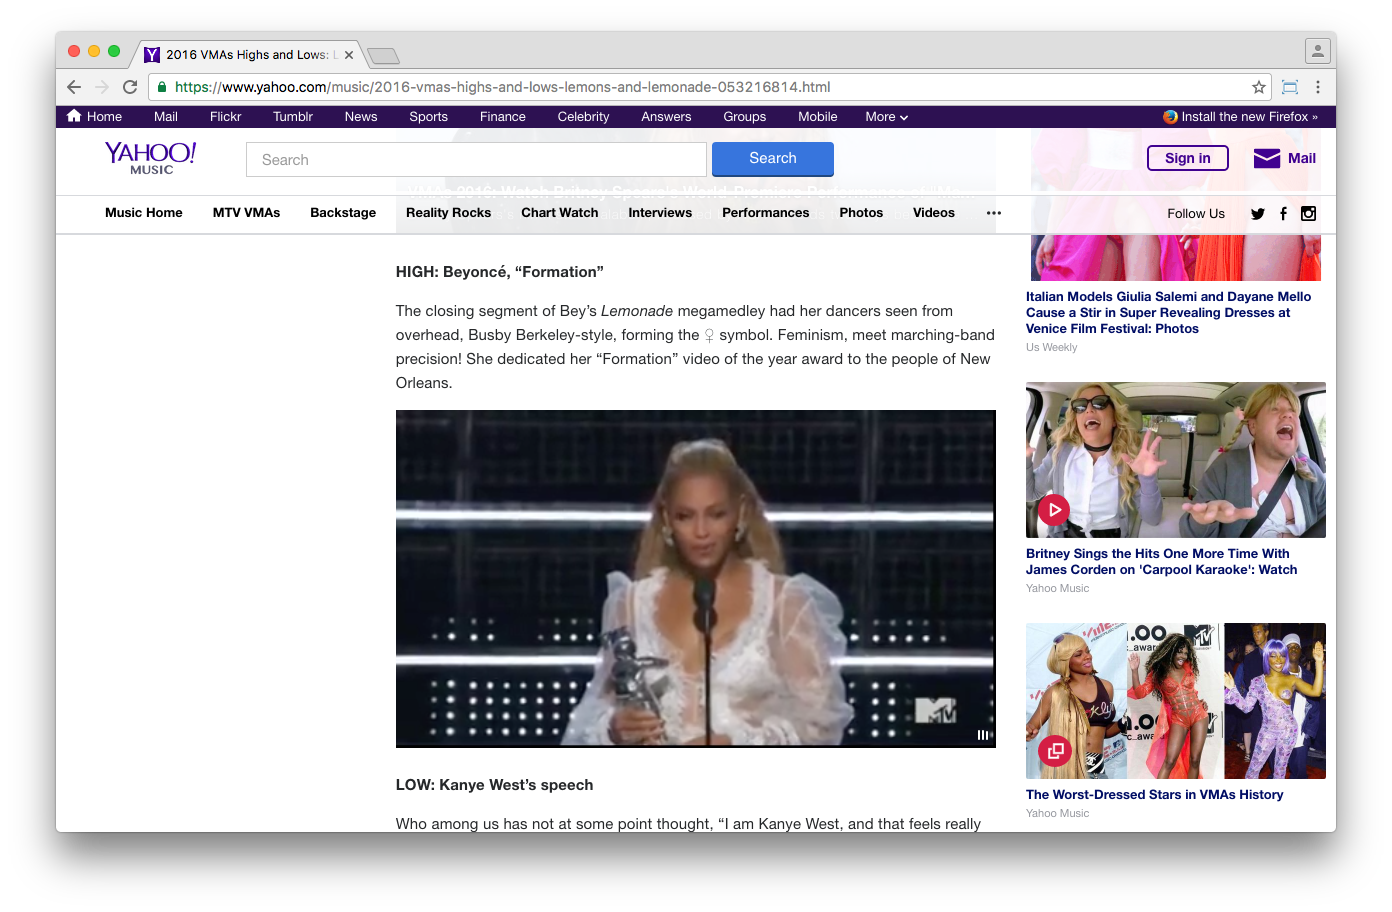 Yahoo's coverage of the VMA's worked without Flash